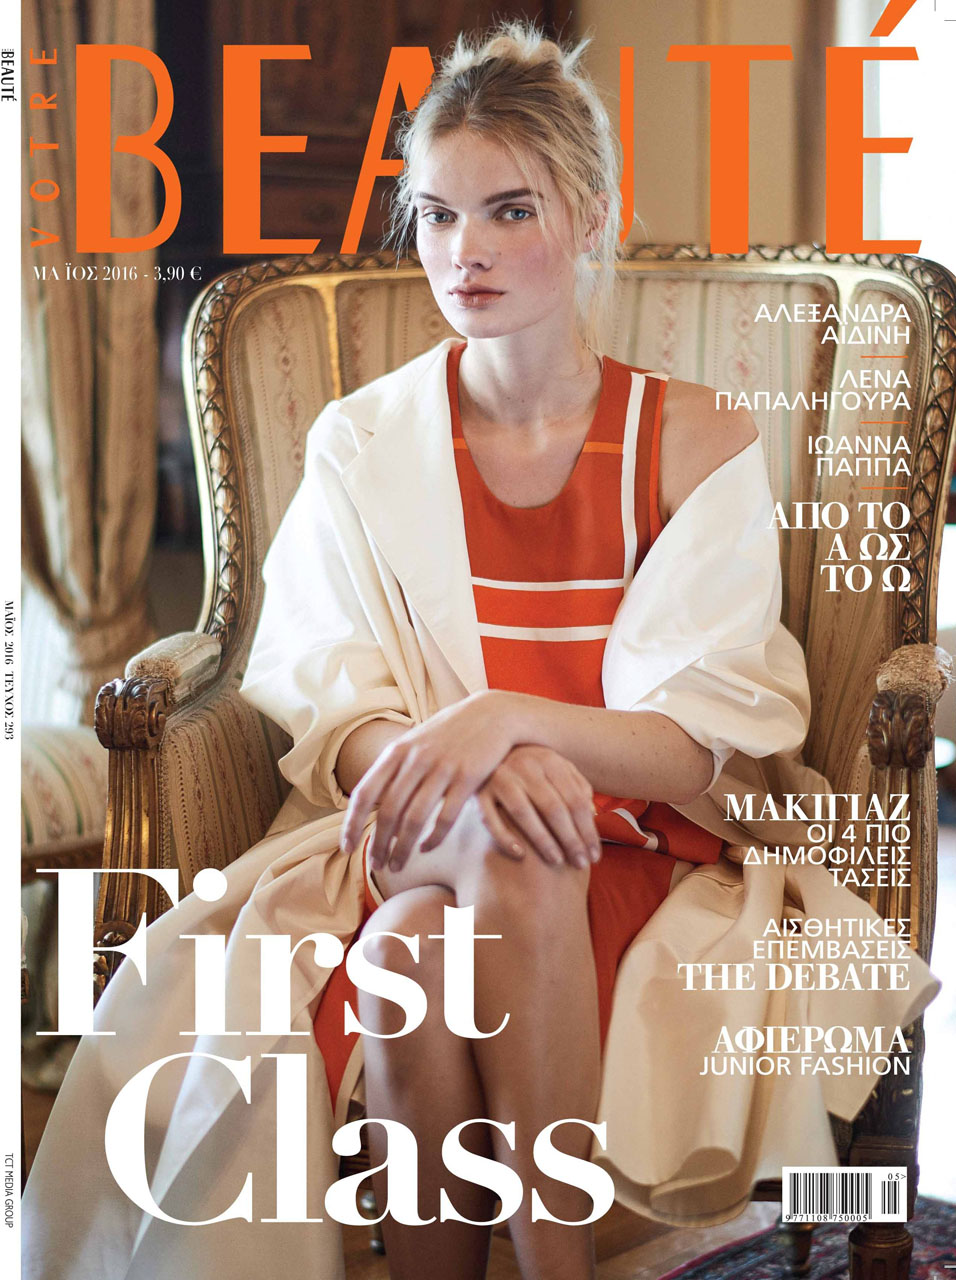 Cover girl: Jane Kuiczk for Votre Beaute looking amazing!